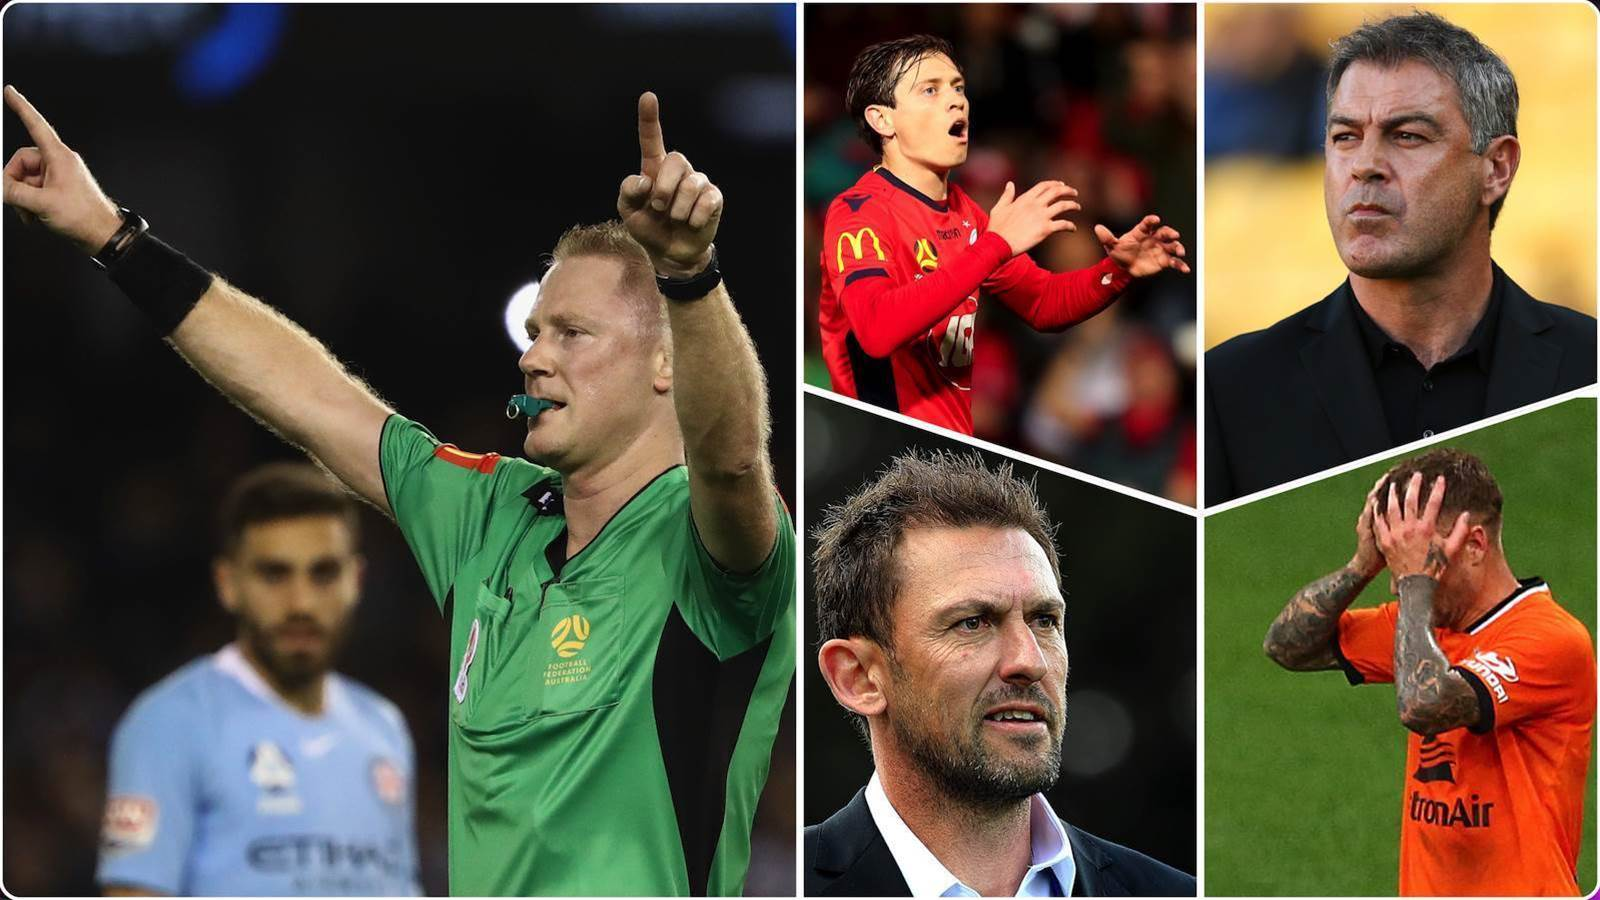 Five key moments that defined round one